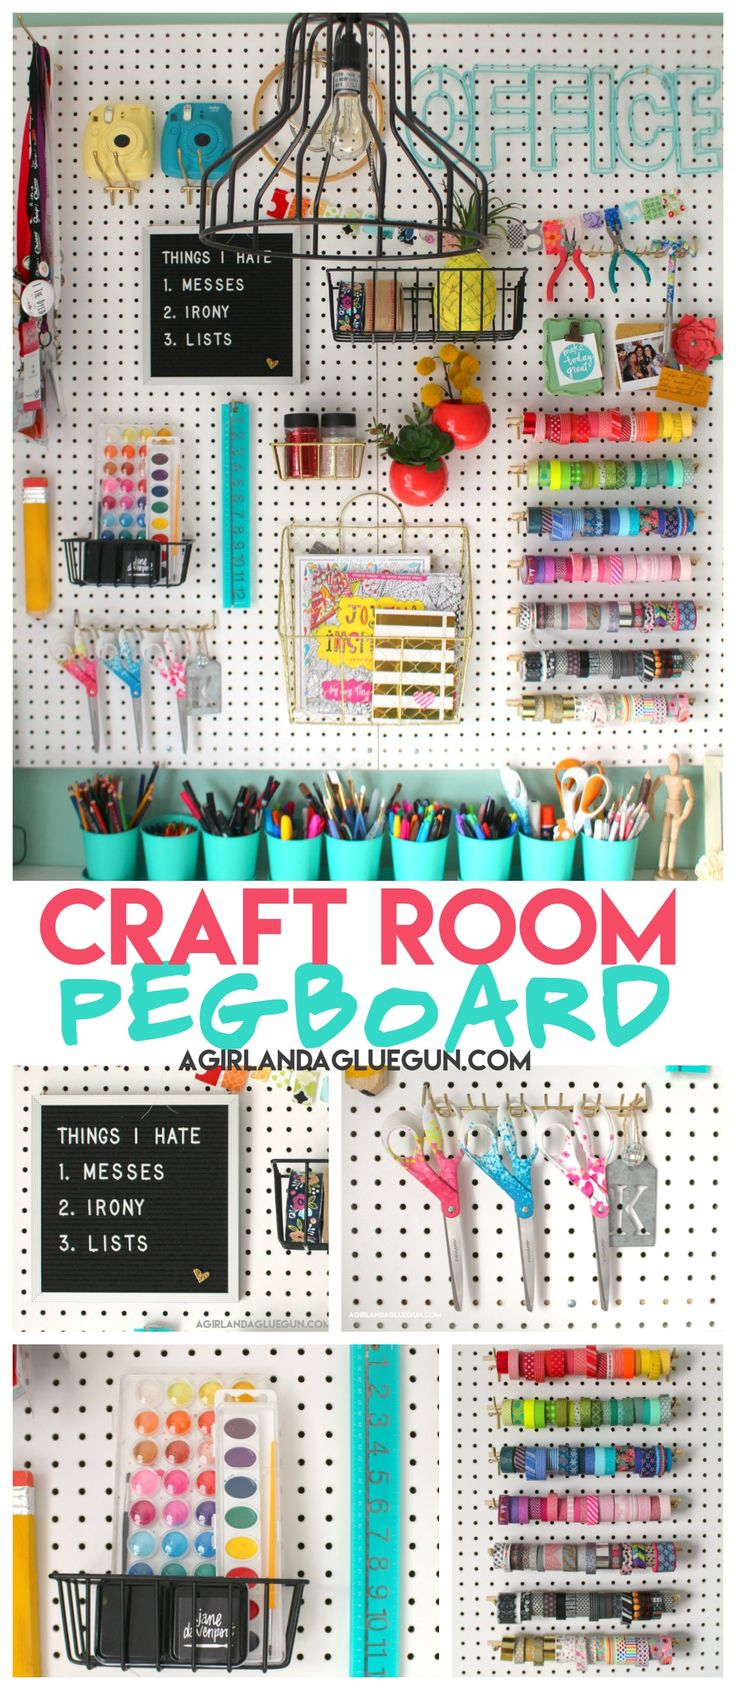 110 best Craft Rooms images on Pinterest | Craft rooms, Craft room ...